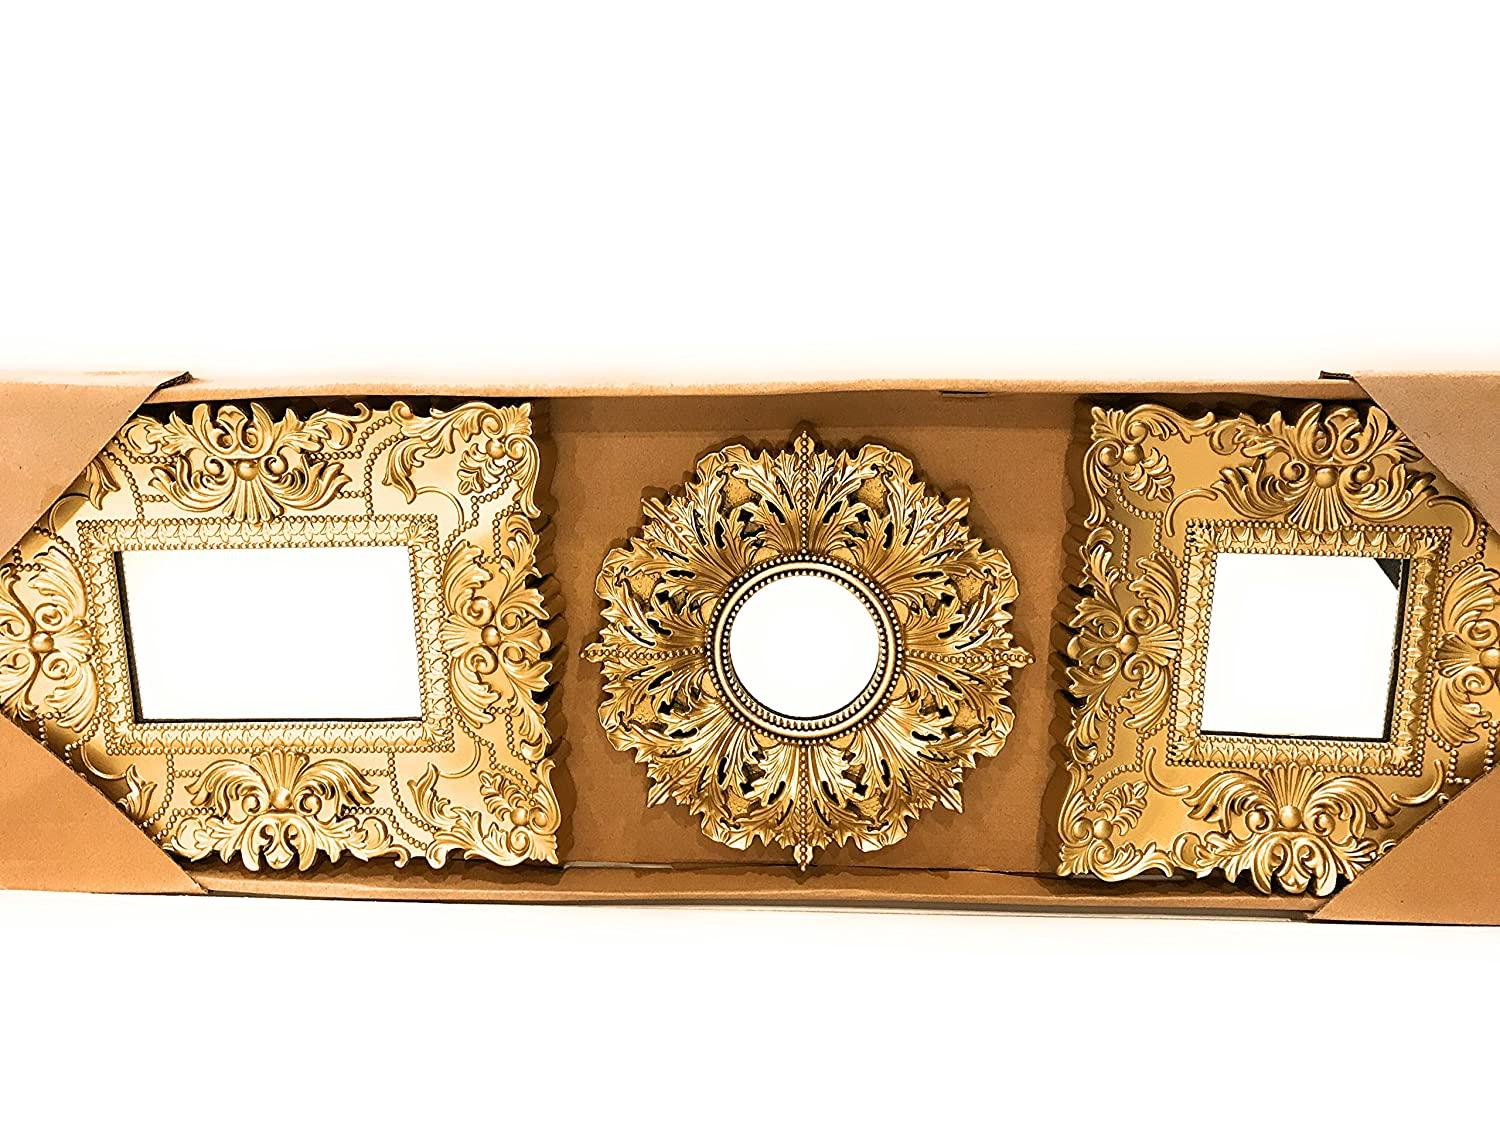 Baroque Gold Mirrors Amazon.com: Better Homes and Gardens Set Of 3 Baroque Wall Mirrors - Gold:  Home u0026 Kitchen